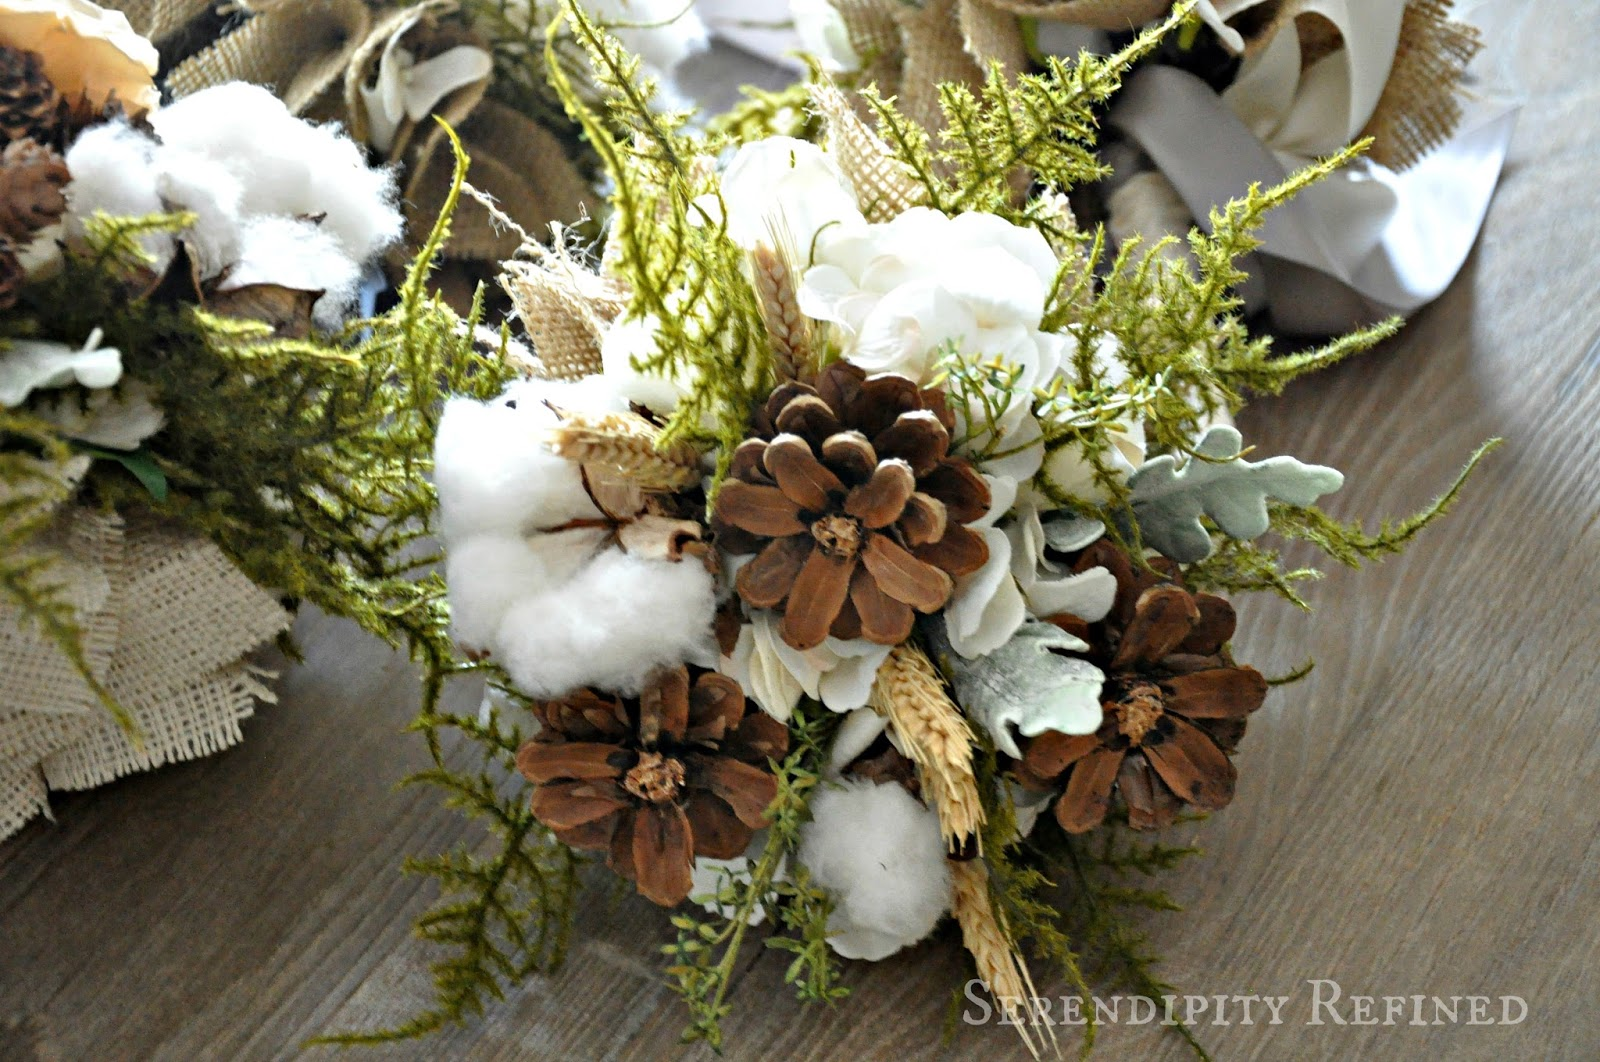 Serendipity Refined Blog Flowers for an Autumn Wedding